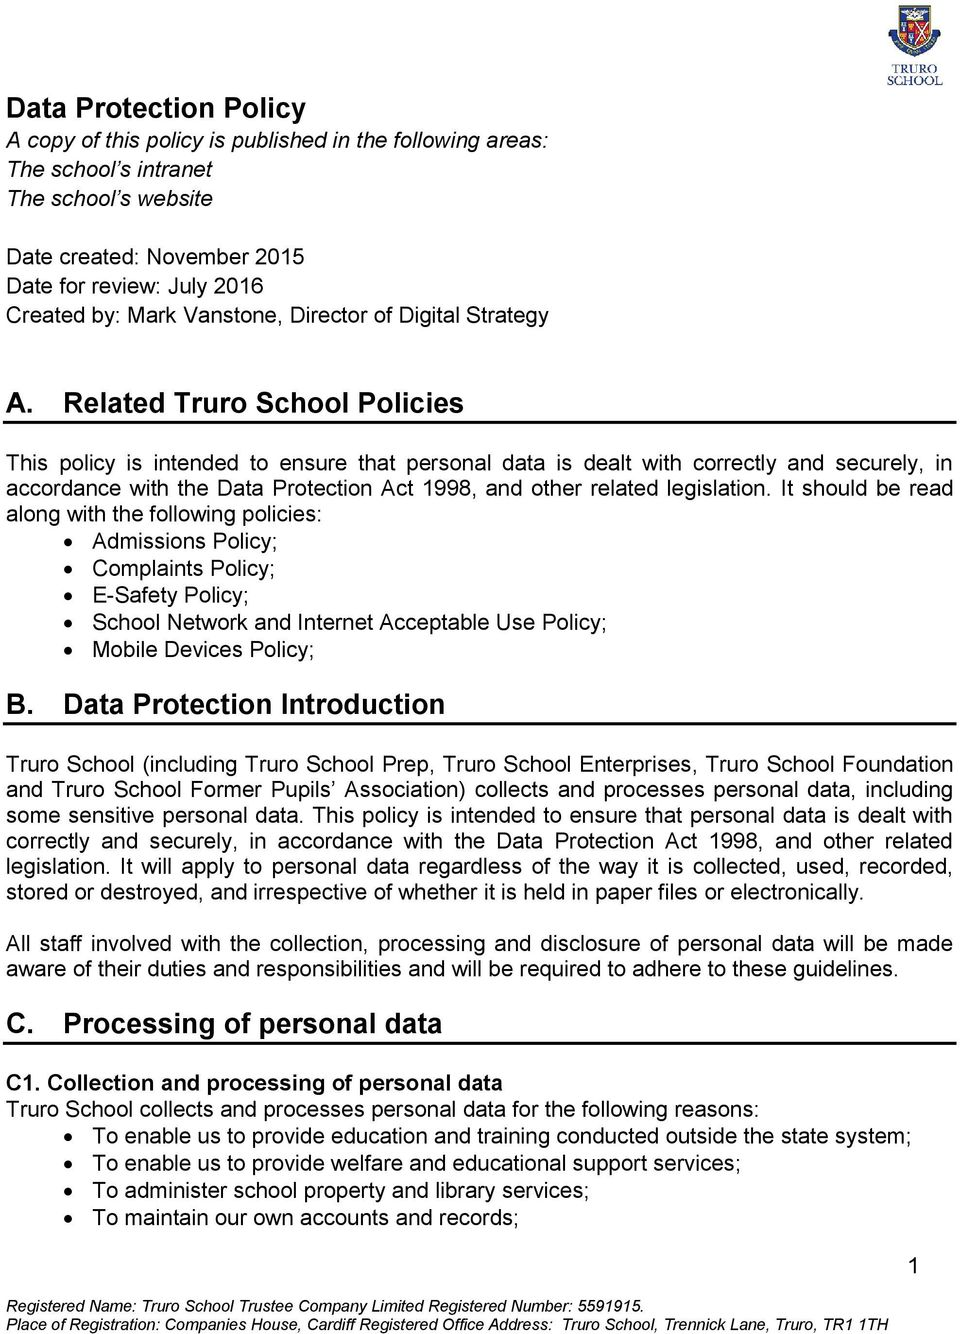 Related Truro School Policies This policy is intended to ensure that personal data is dealt with correctly and securely, in accordance with the Data Protection Act 1998, and other related legislation.